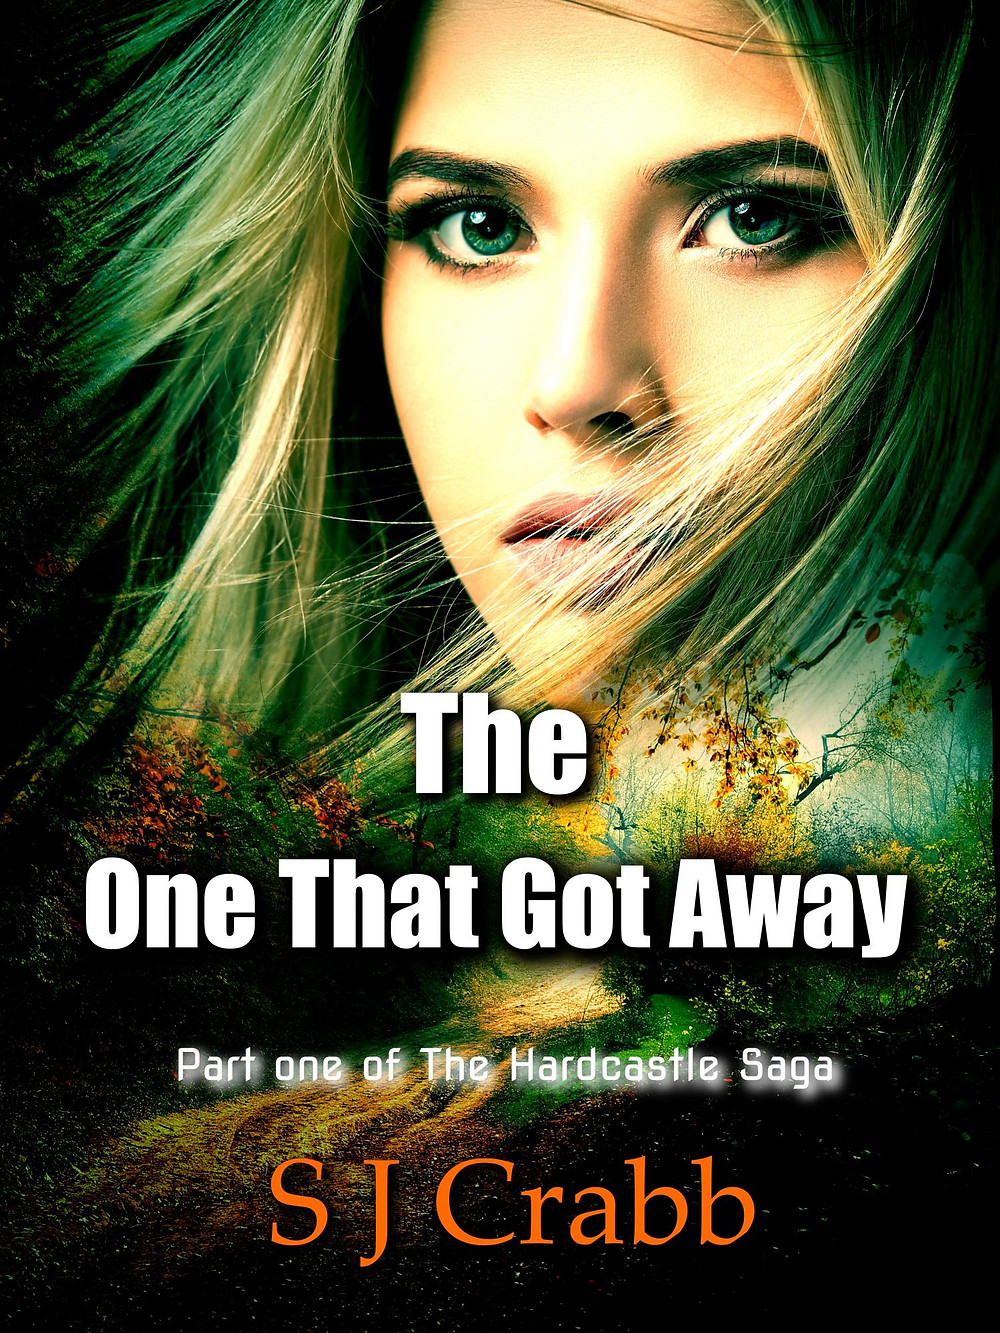 Take a look at the new cover for The One That Got Away. I felt that it was in need of a professionally designed cover and I am so pleased with the results. Thanks to Ravenborn for such a great image. I am going to offer it for free next weekend so for anybody that still hasn't read it download it then and let me know what you think.